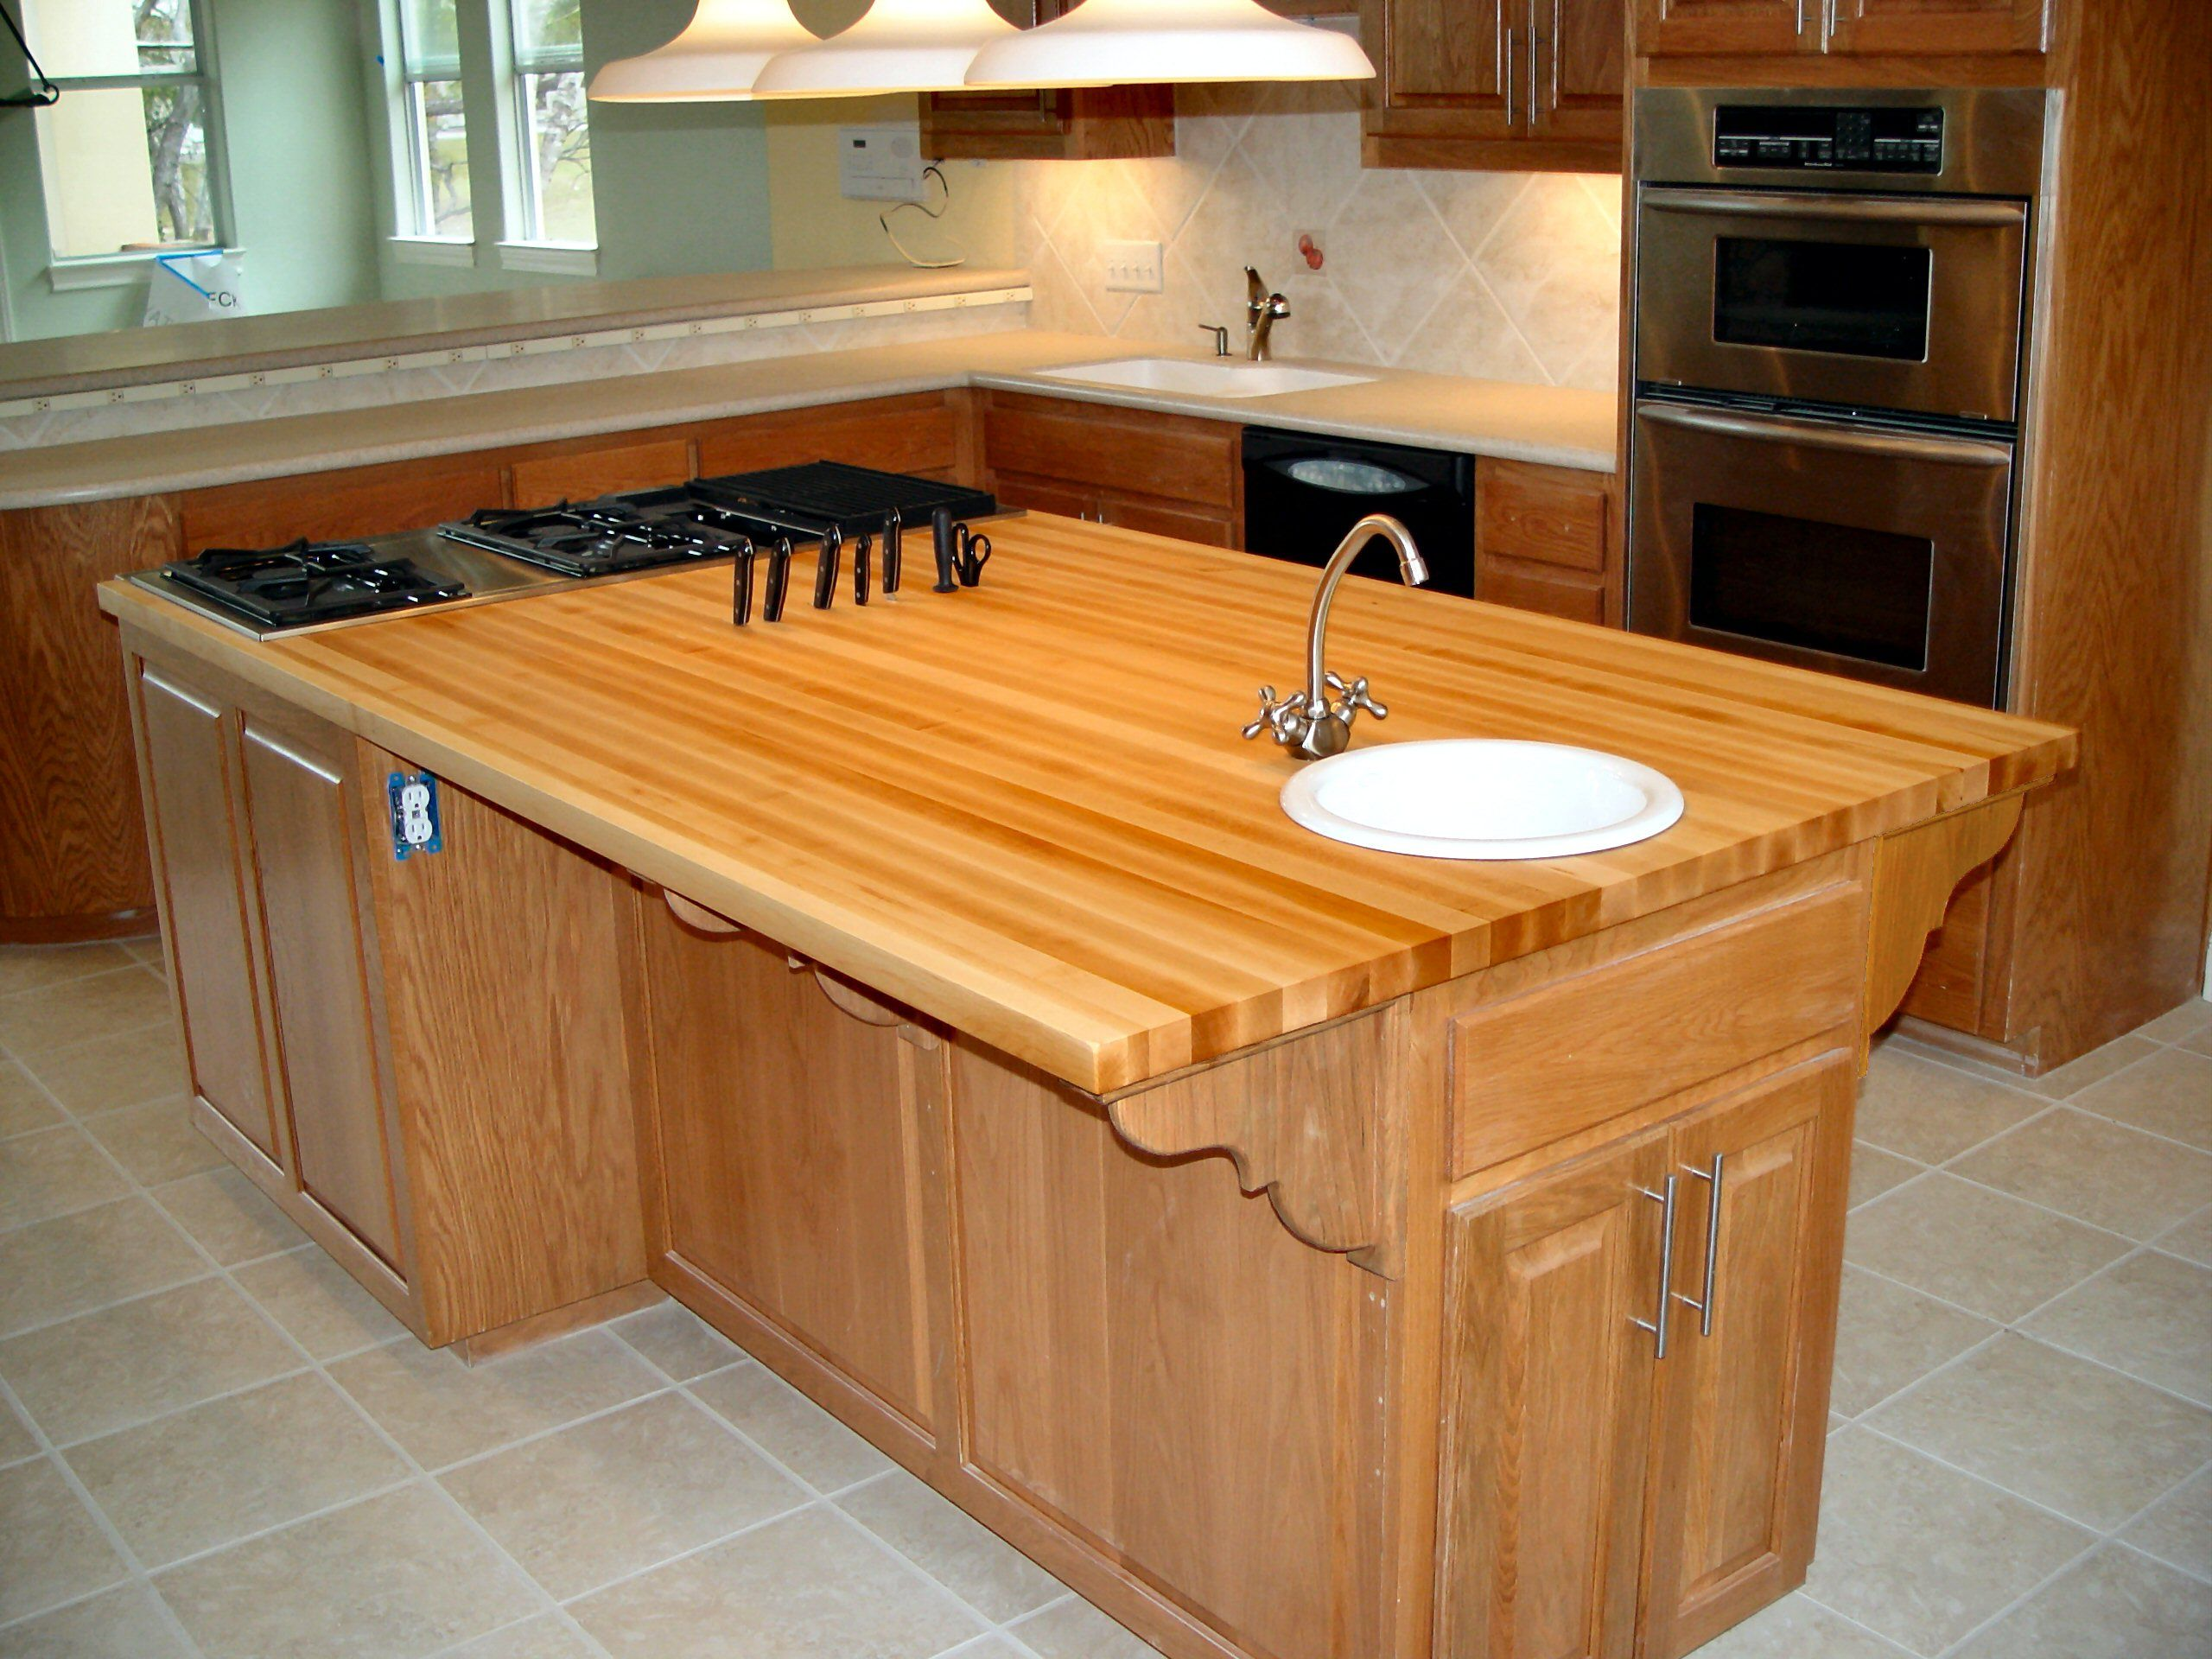 Devos Custom Woodworking Hard Maple Wood Countertop Photo Gallery This Shoes You An